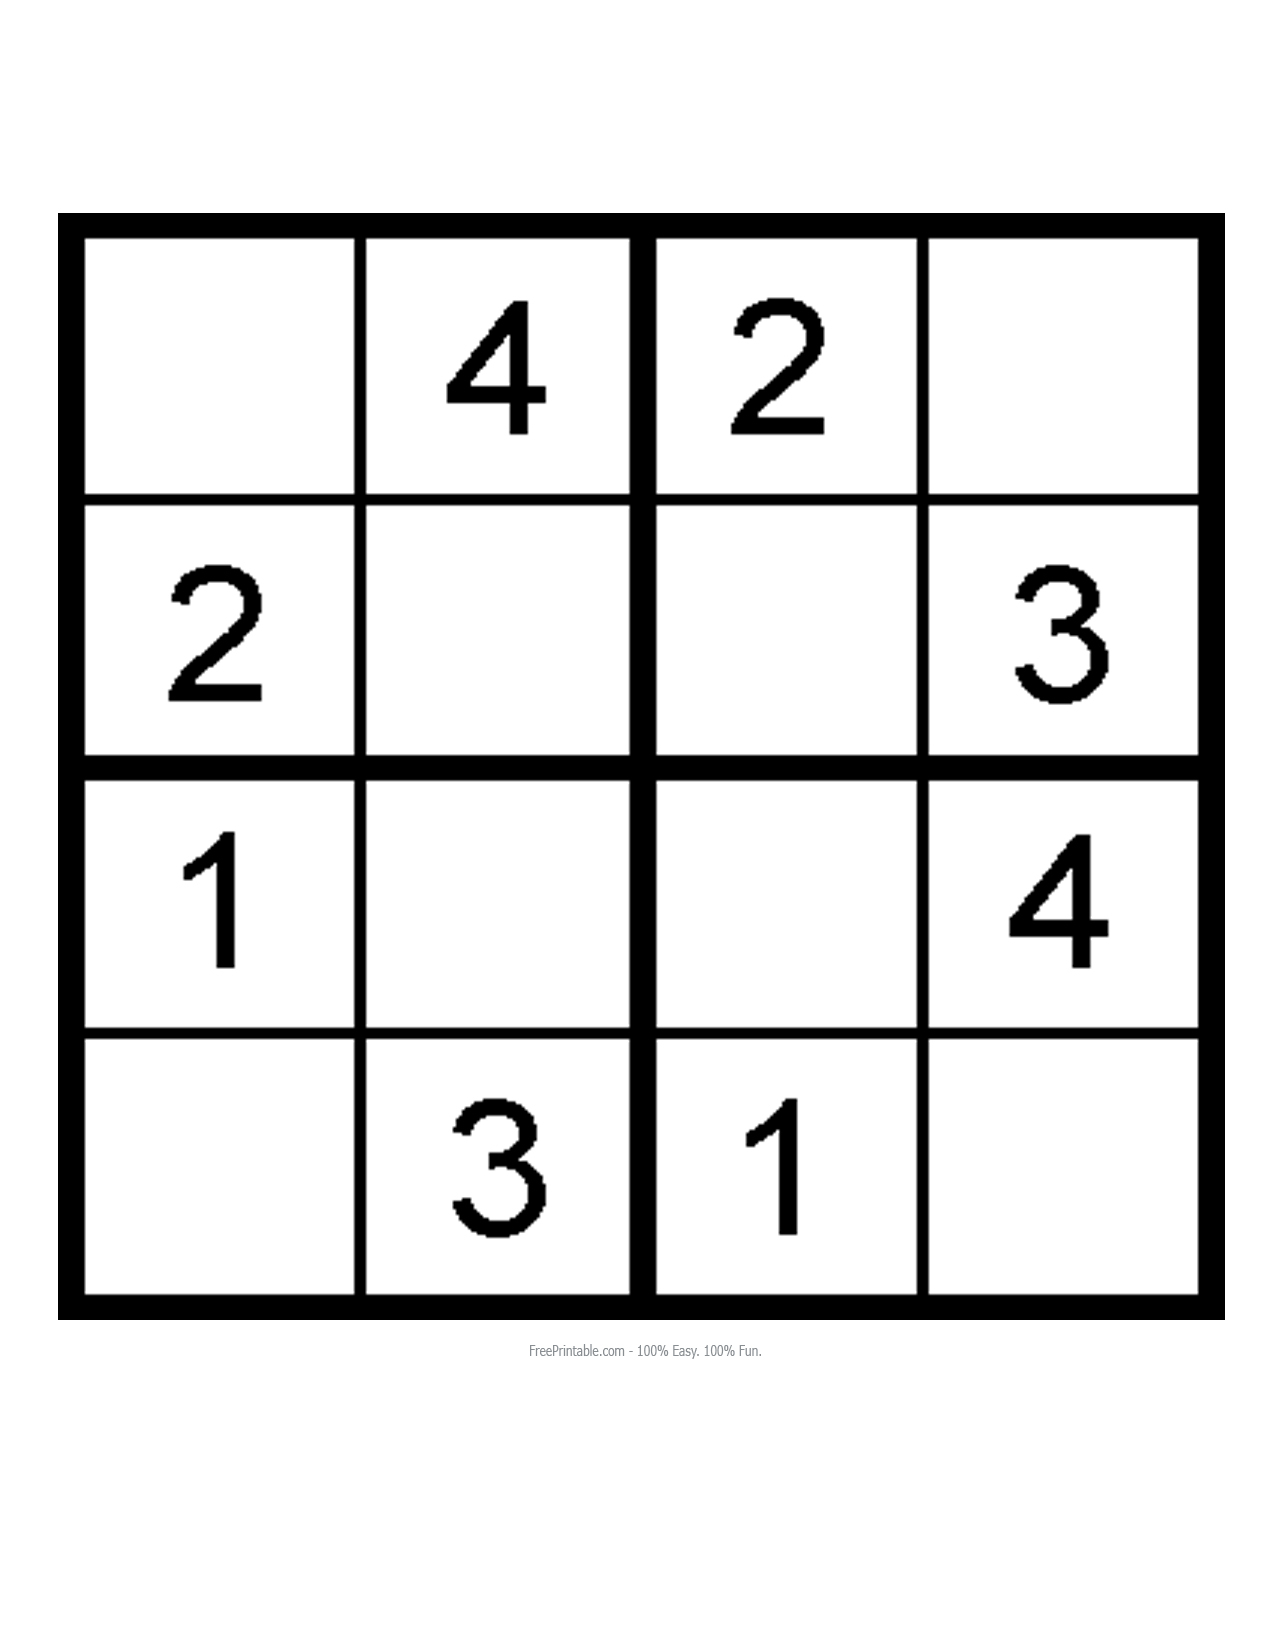 Worksheet Activity Village Sudoku grid worksheets abitlikethis kids sudoku printable search results calendar 2015